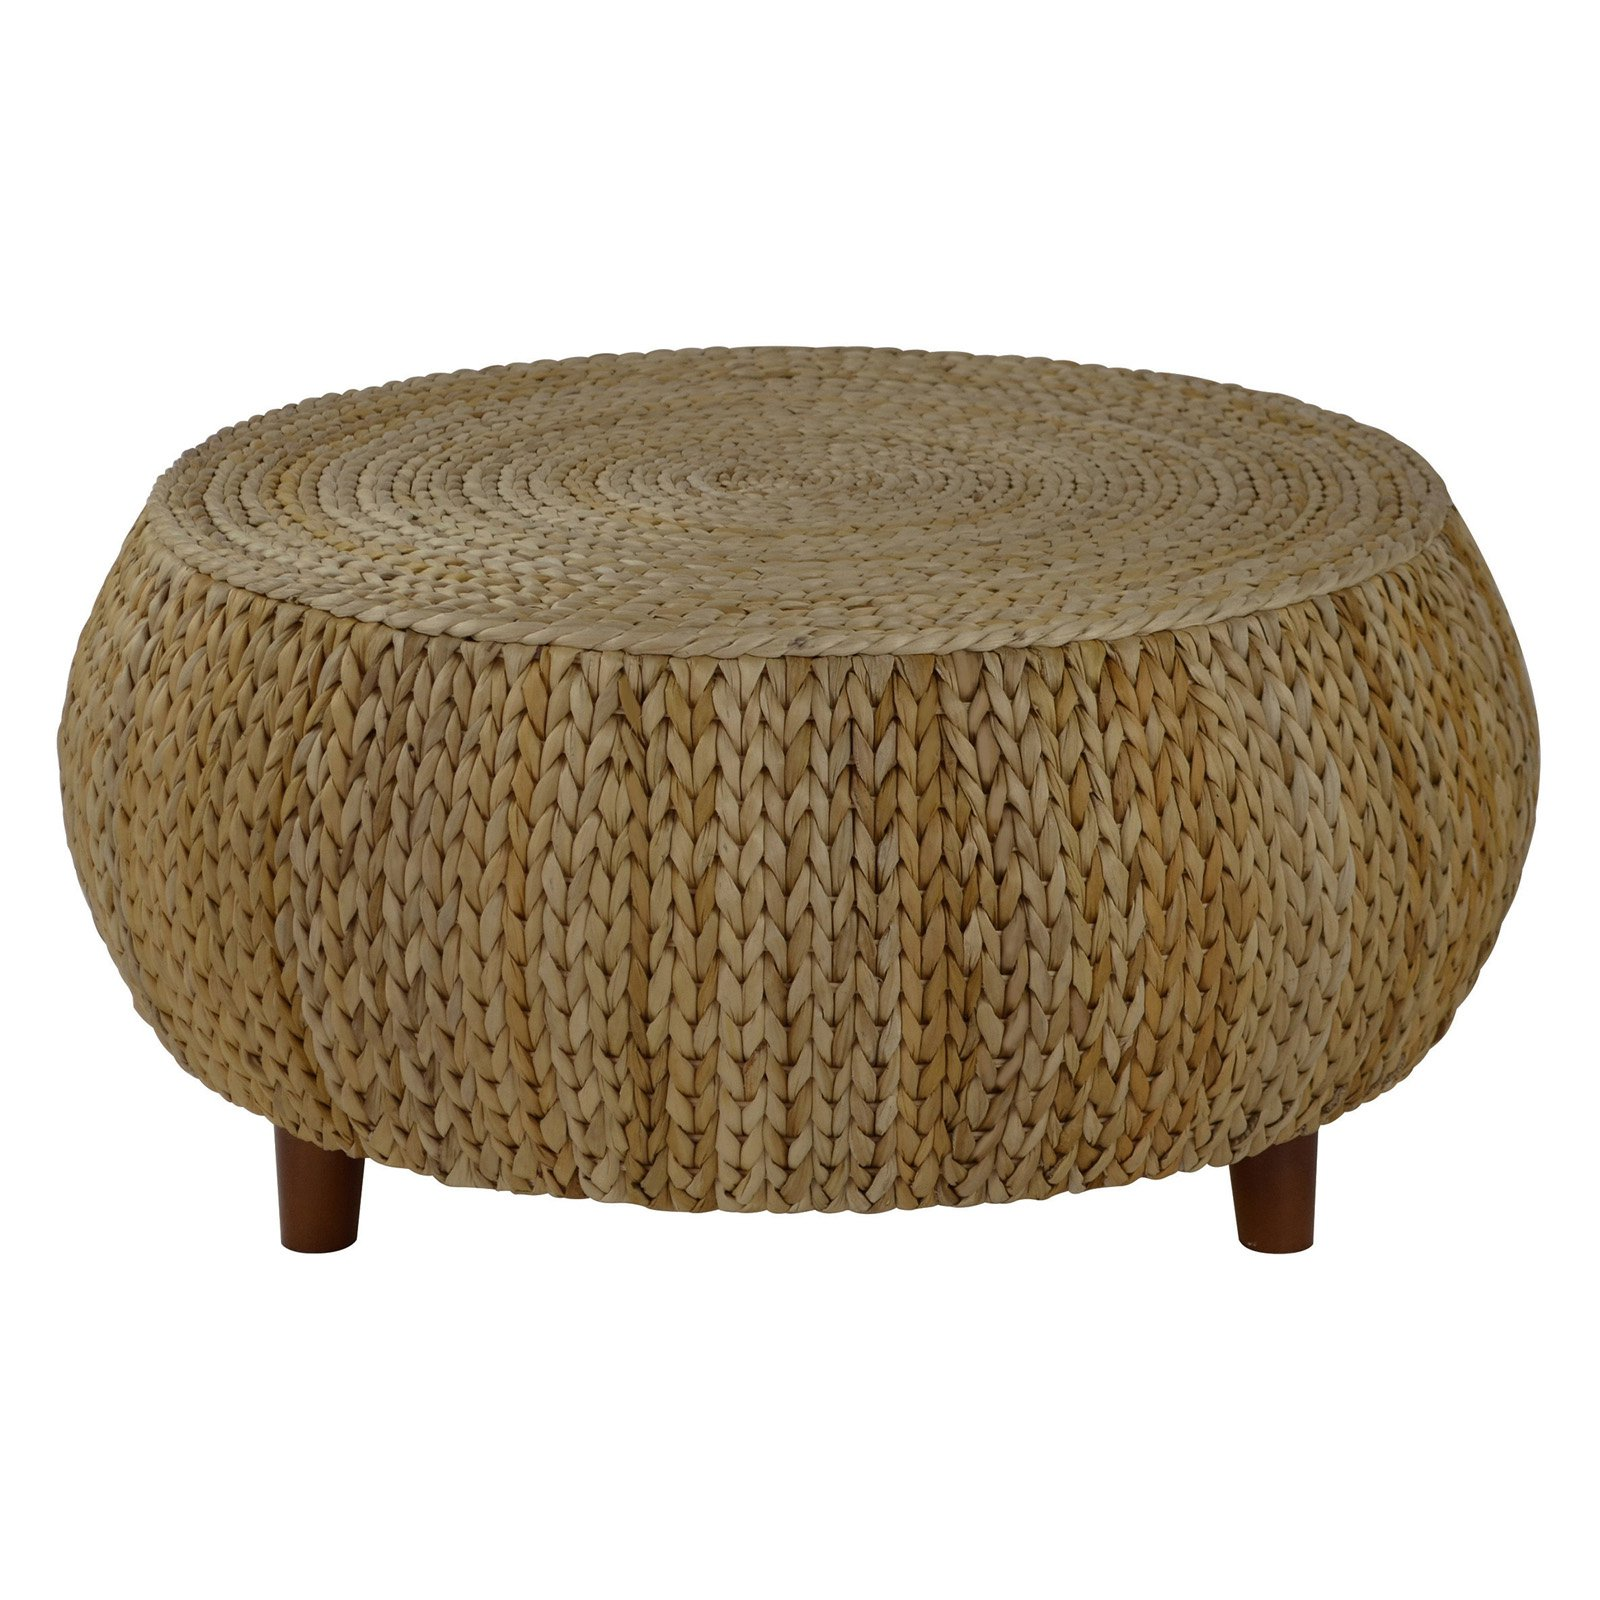 Gallerie Decor Bali Breeze Low Round Accent Table by Gallerie Decor LLC